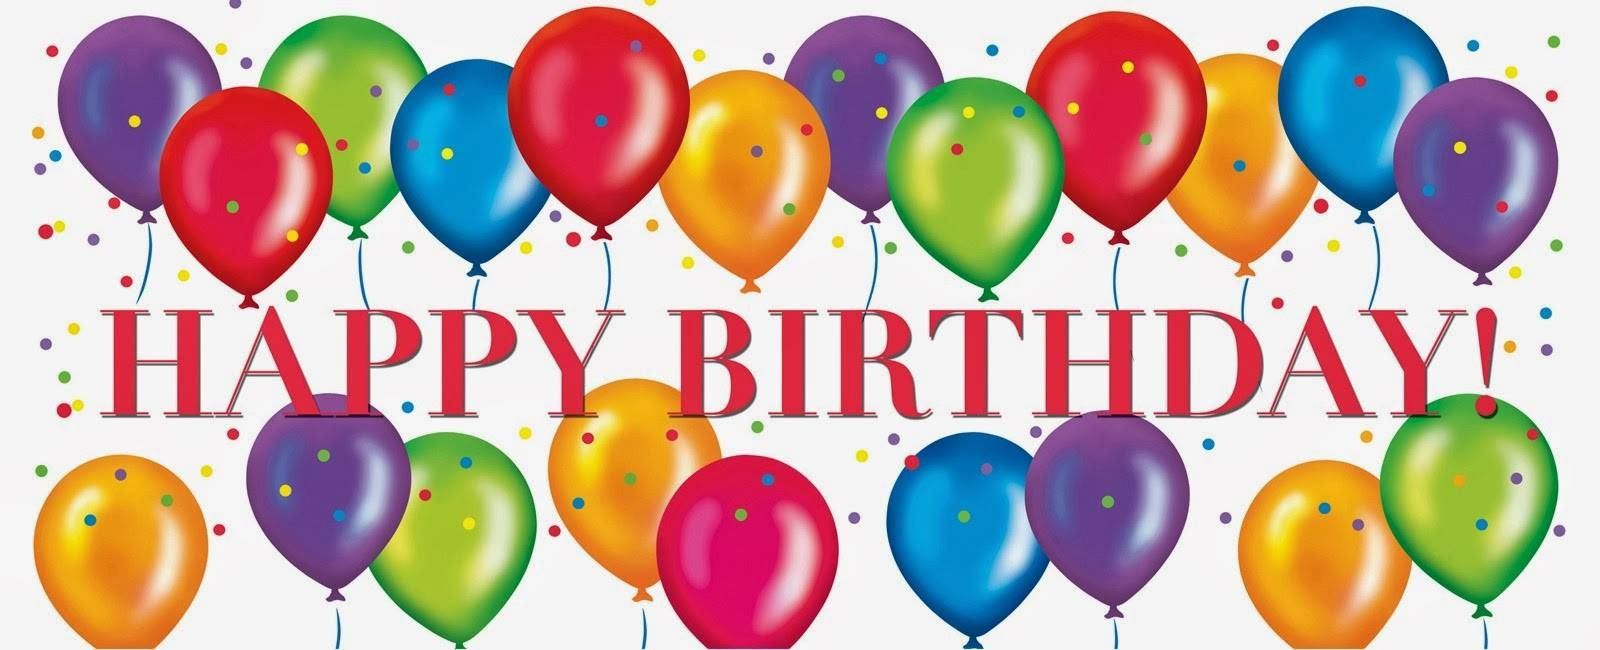 Happy Birthday Banners For Facebook